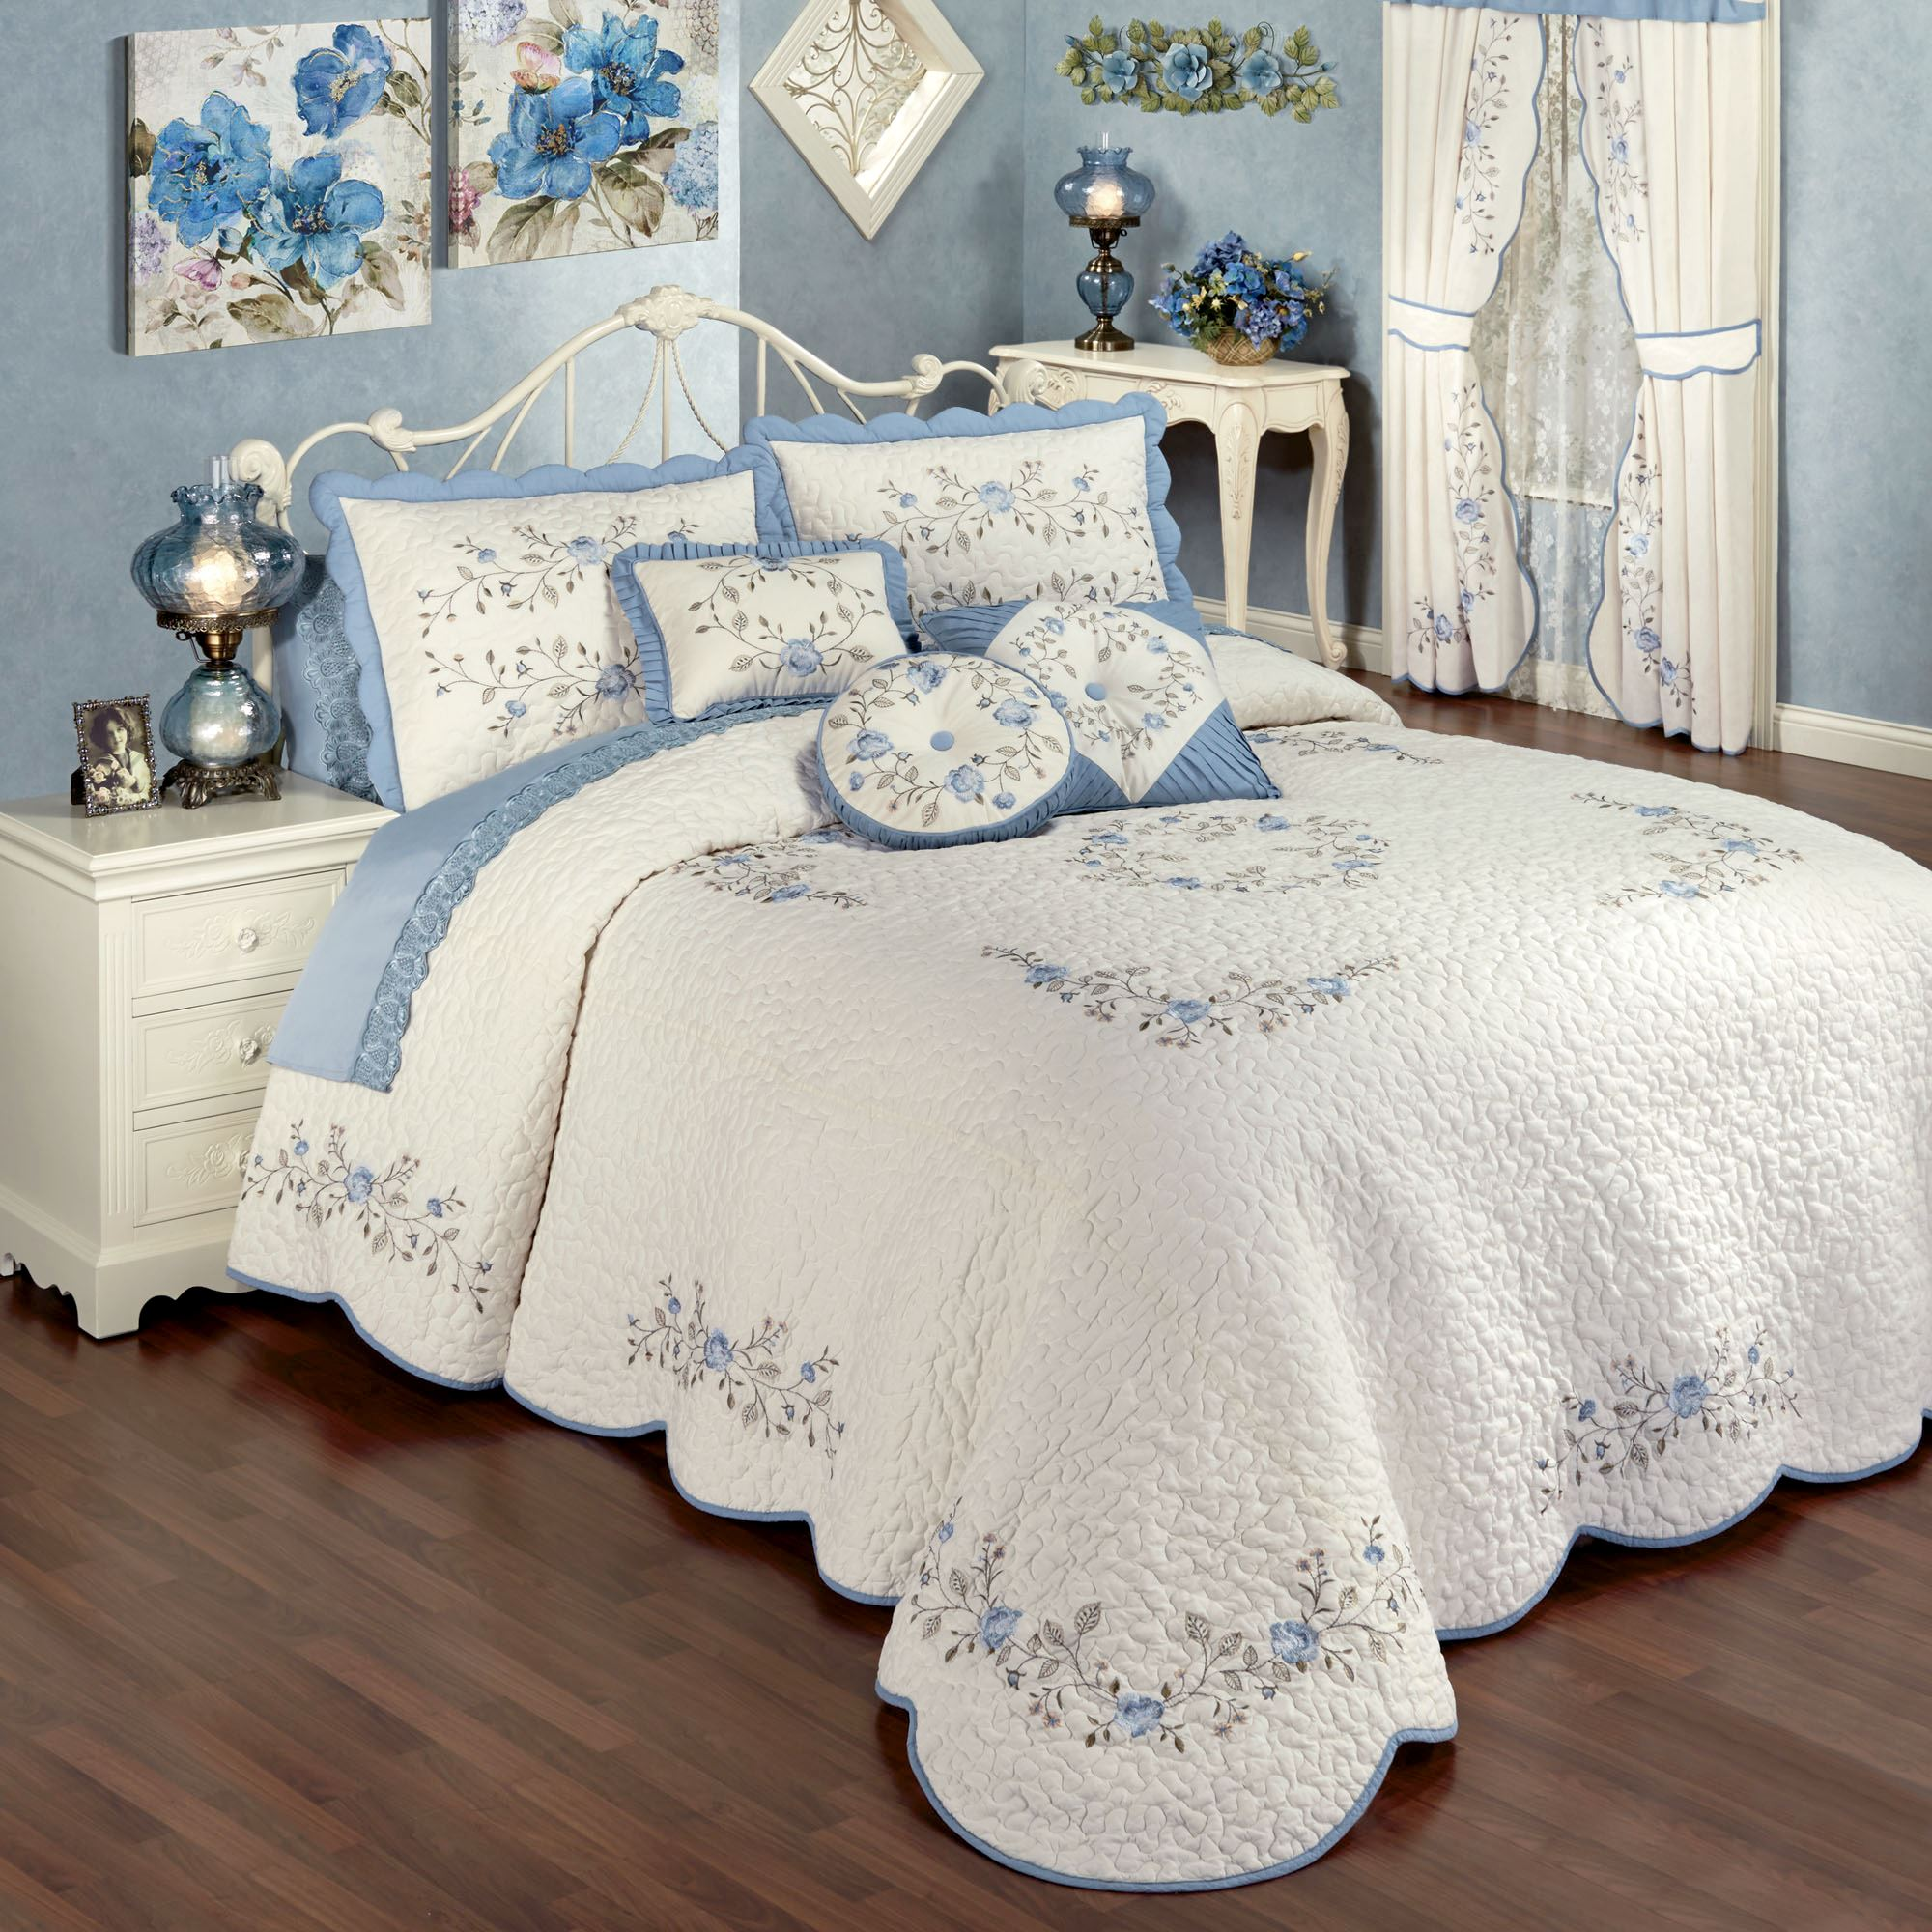 Antique Charm Floral Oversized Quilted Bedspread Bedding